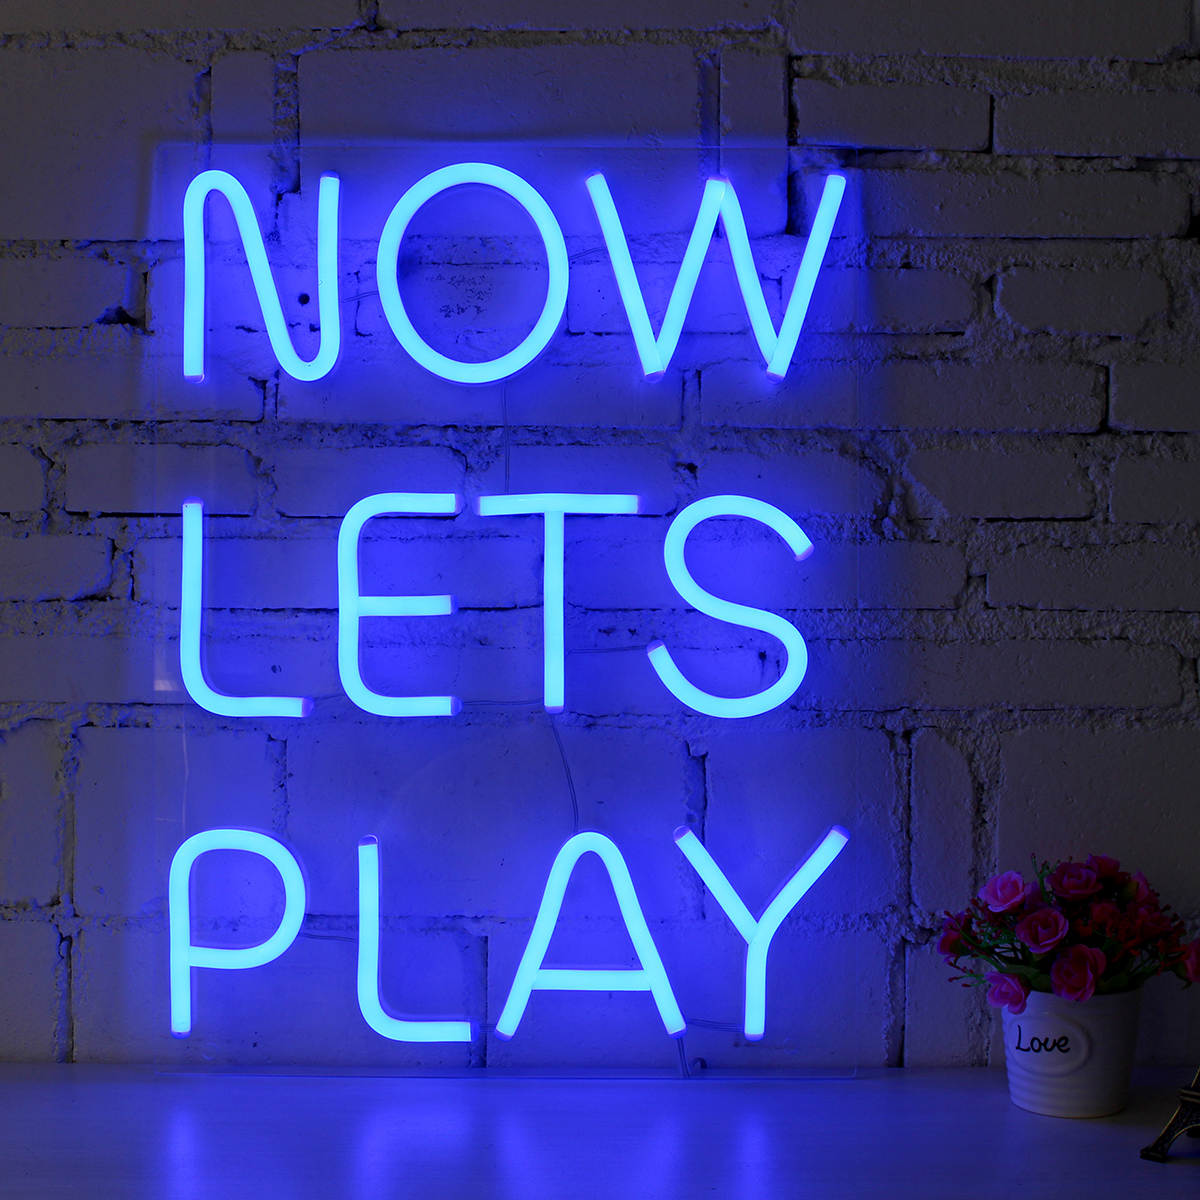 NOW LETS PLAY Neon Sign LED Tube Visual Artwork Bar Pub Club Wall Decor String Light